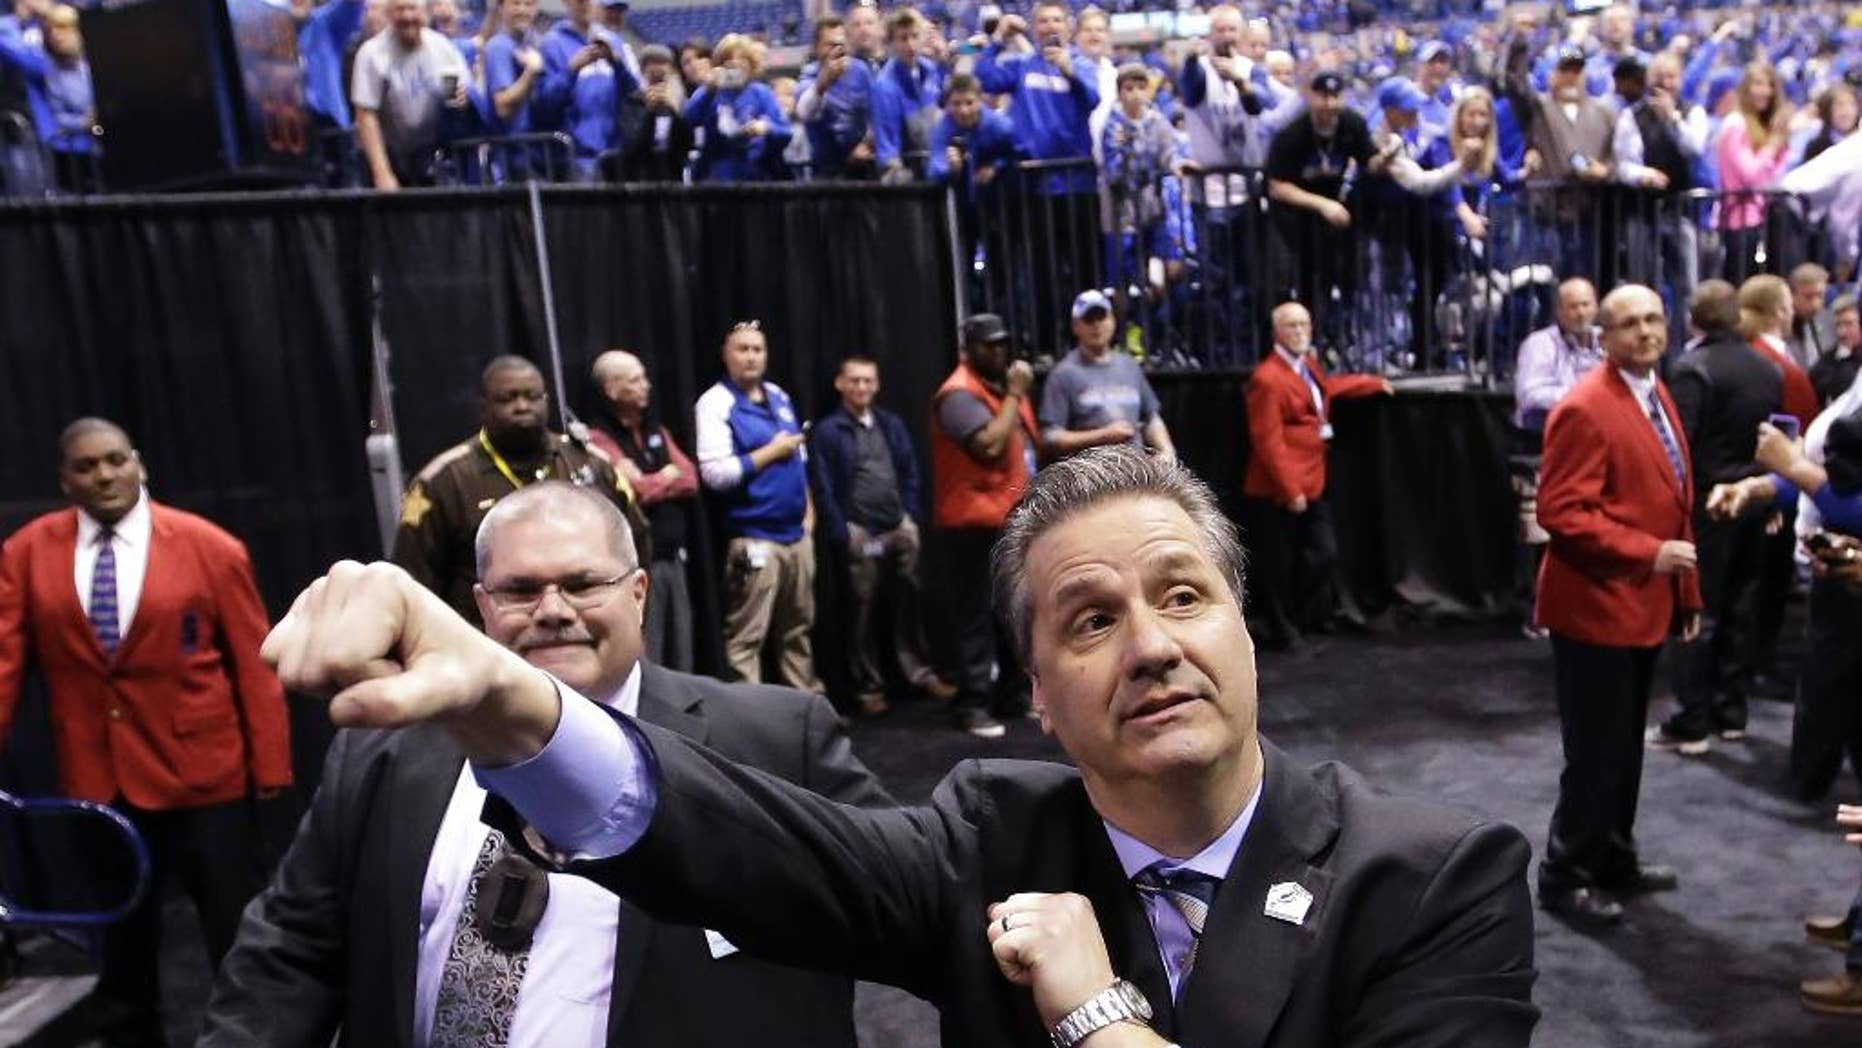 Kentucky head coach John Calipari celebrates after an NCAA Midwest Regional final college basketball tournament game against Michigan Sunday, March 30, 2014, in Indianapolis. Kentucky won 75-72 to advance to the Final Four. (AP Photo/David J. Phillip)